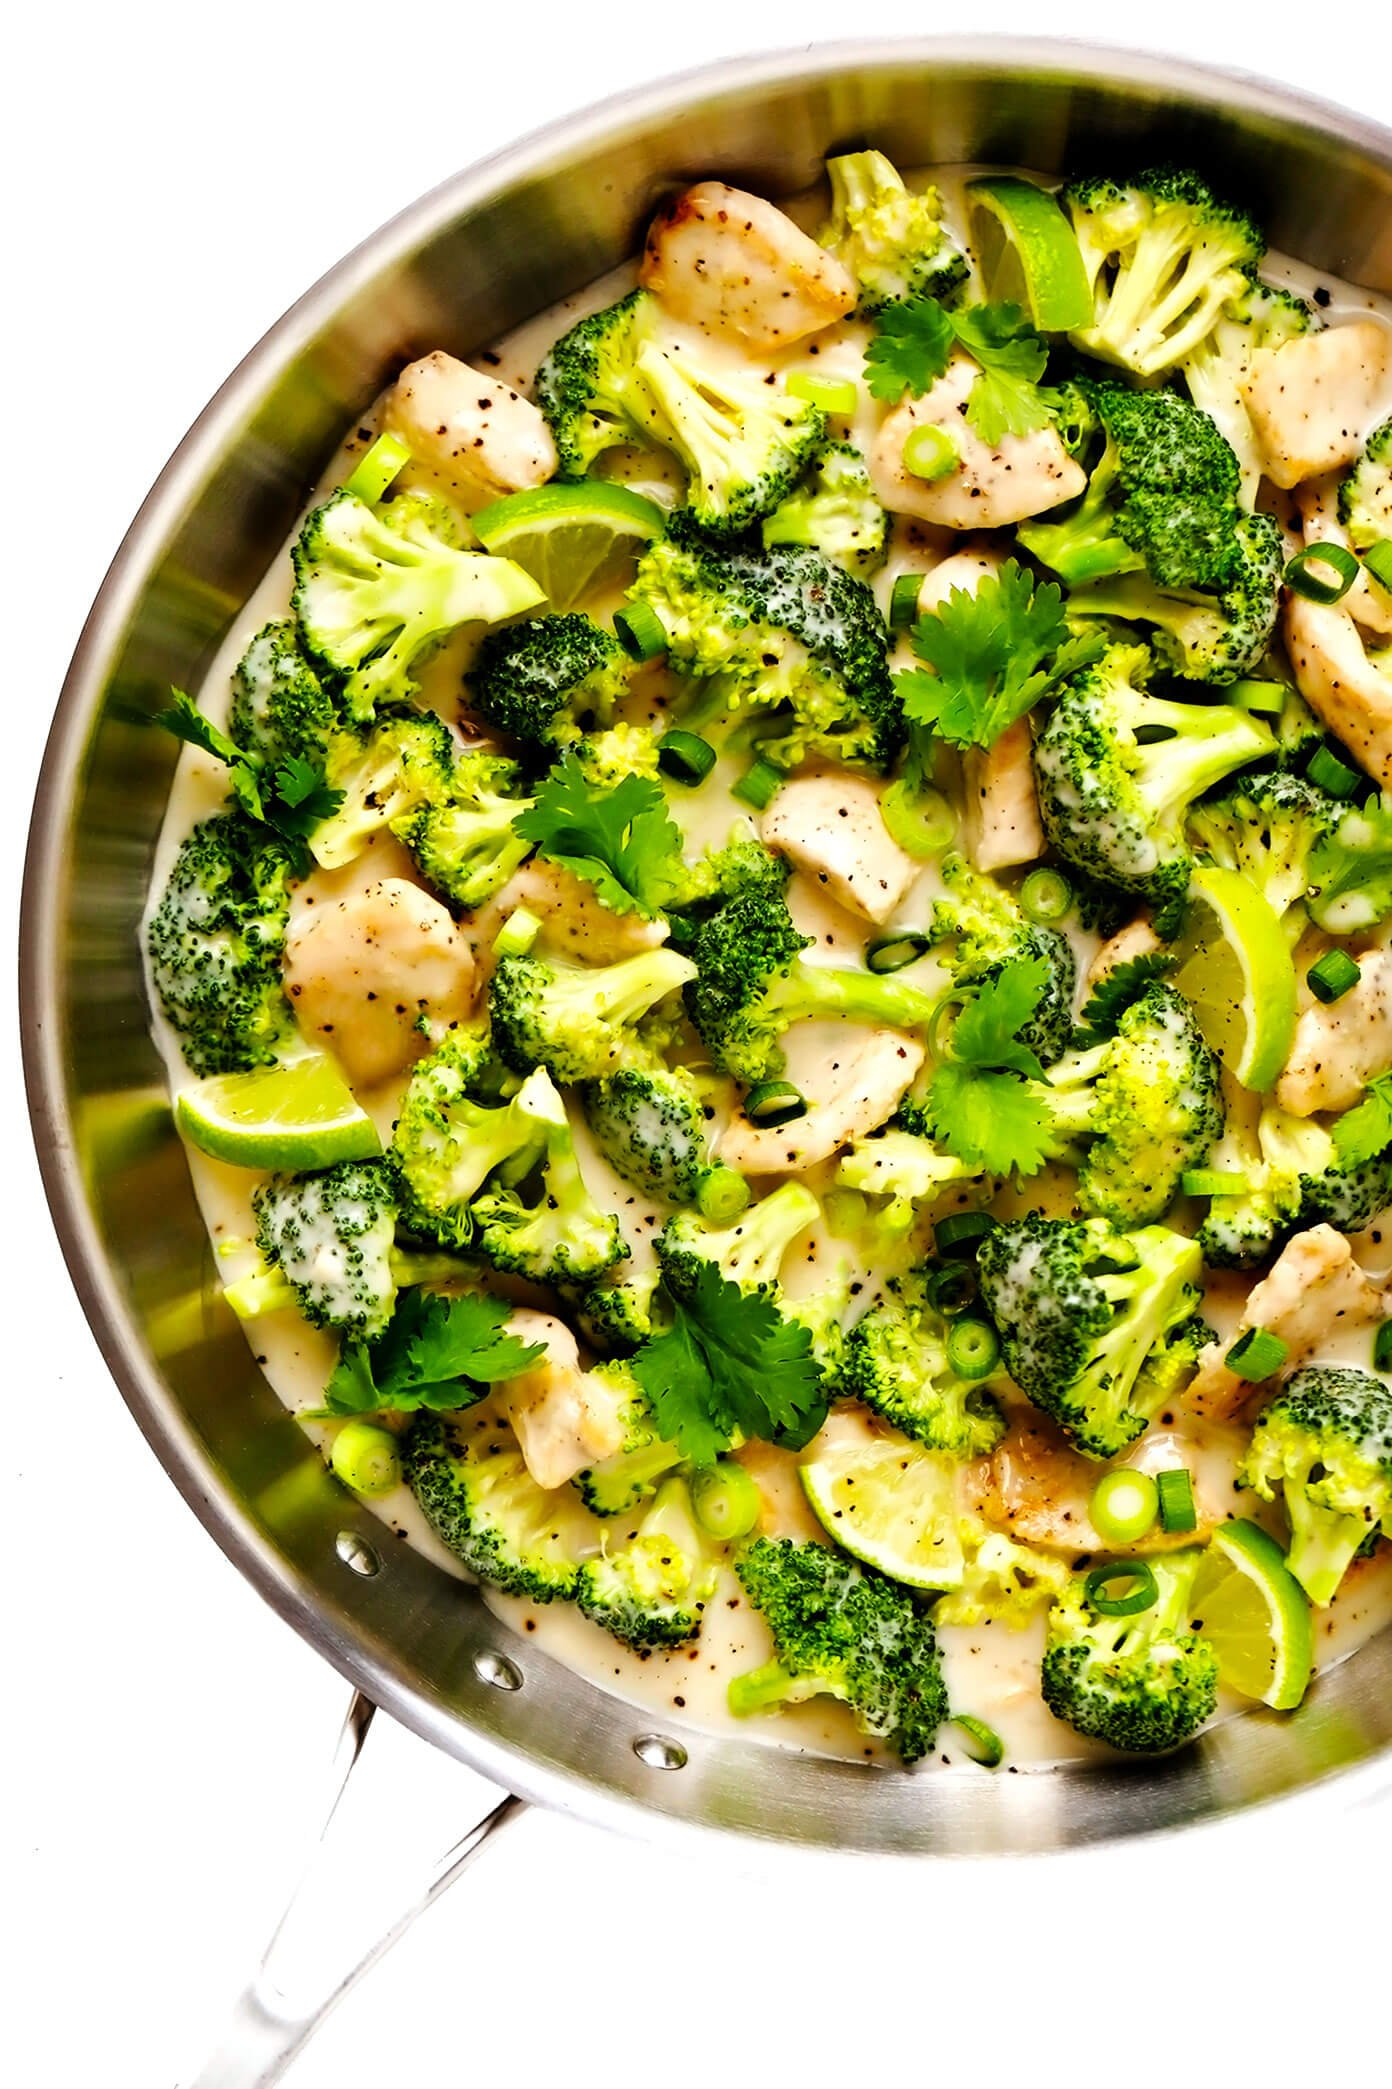 Chicken and Broccoli with Coconut Lime Sauce in Saute Pan